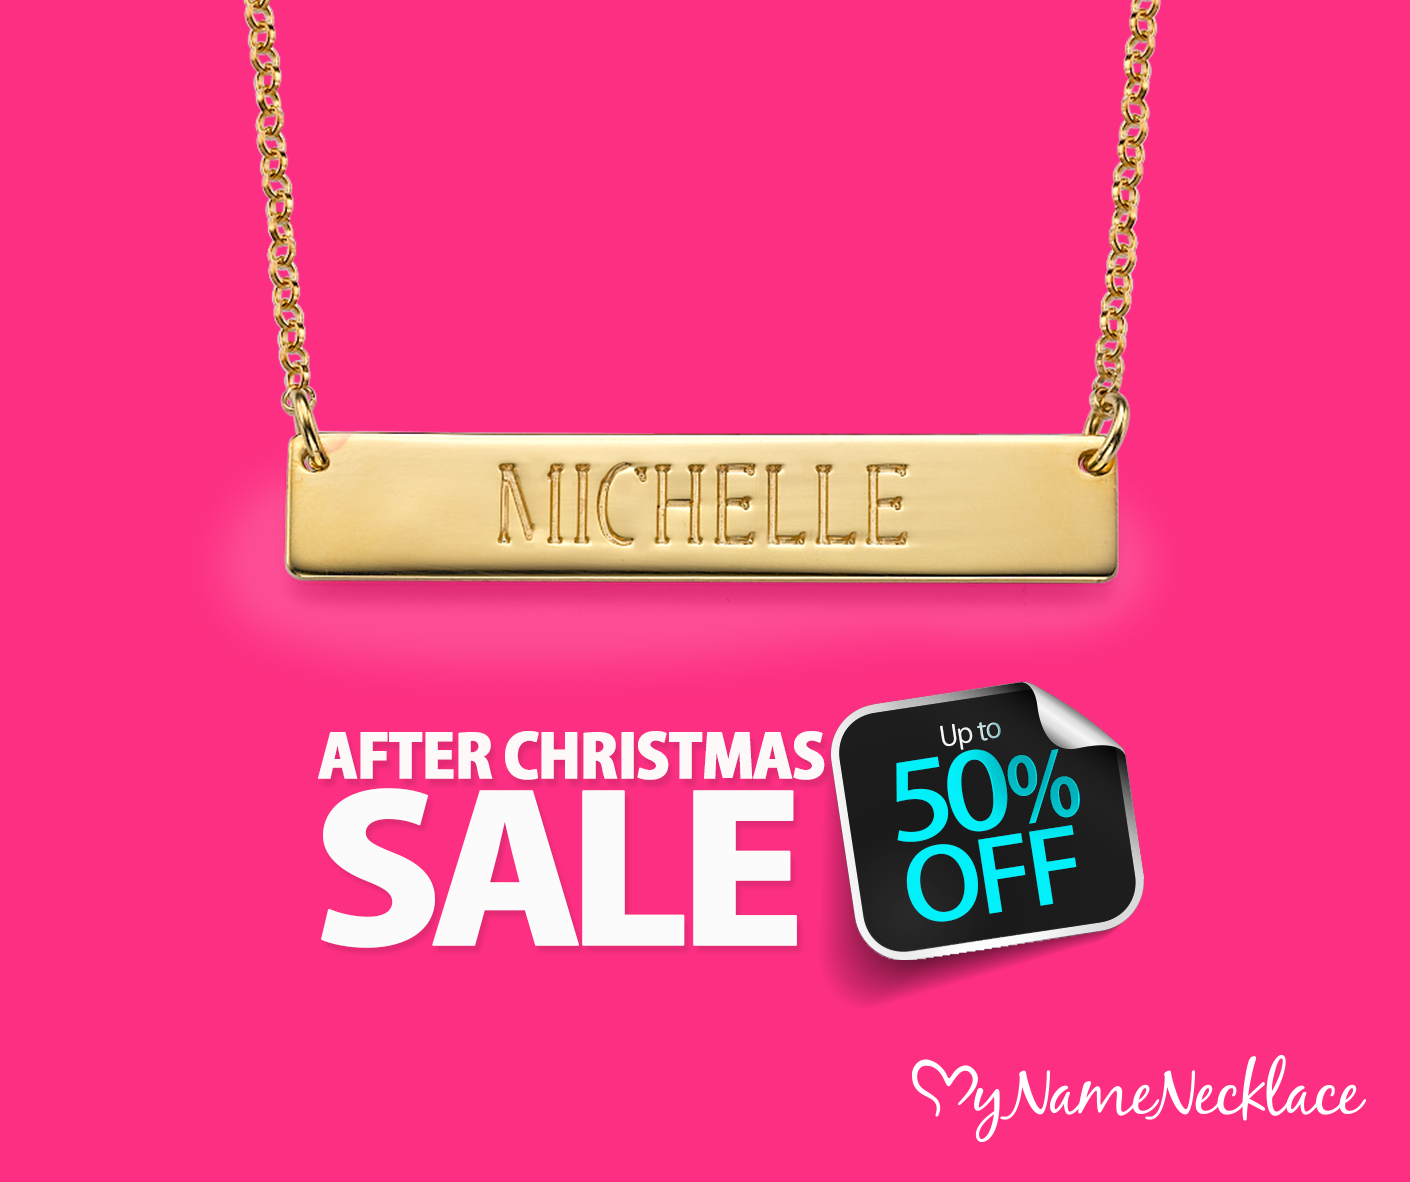 MyNameNecklace After Christmas Sale